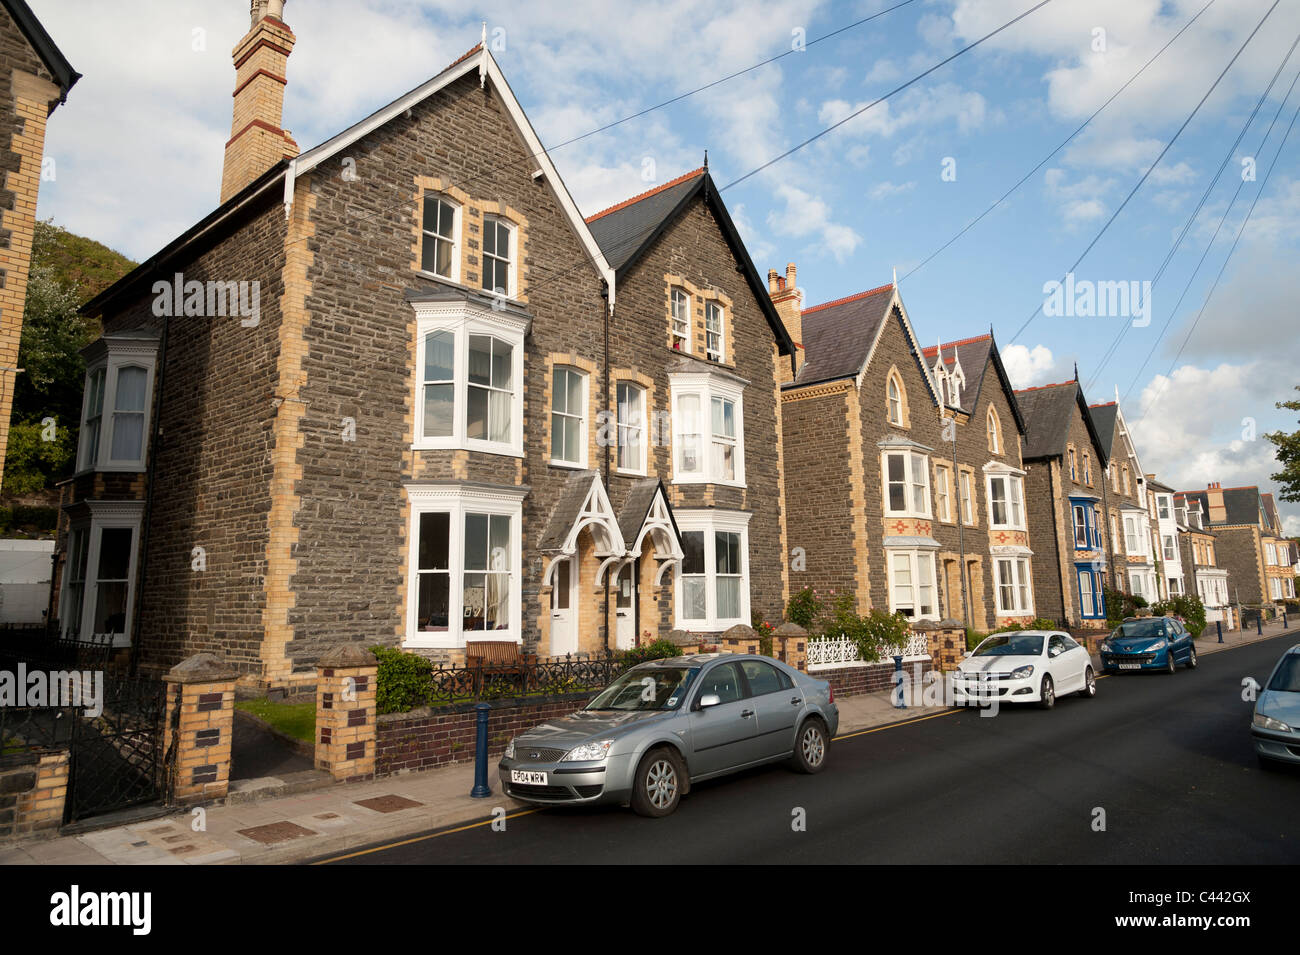 A row of Solidly built 1930's semi detached town houses in Aberystwyth, Ceredigion, Wales UK Stock Foto